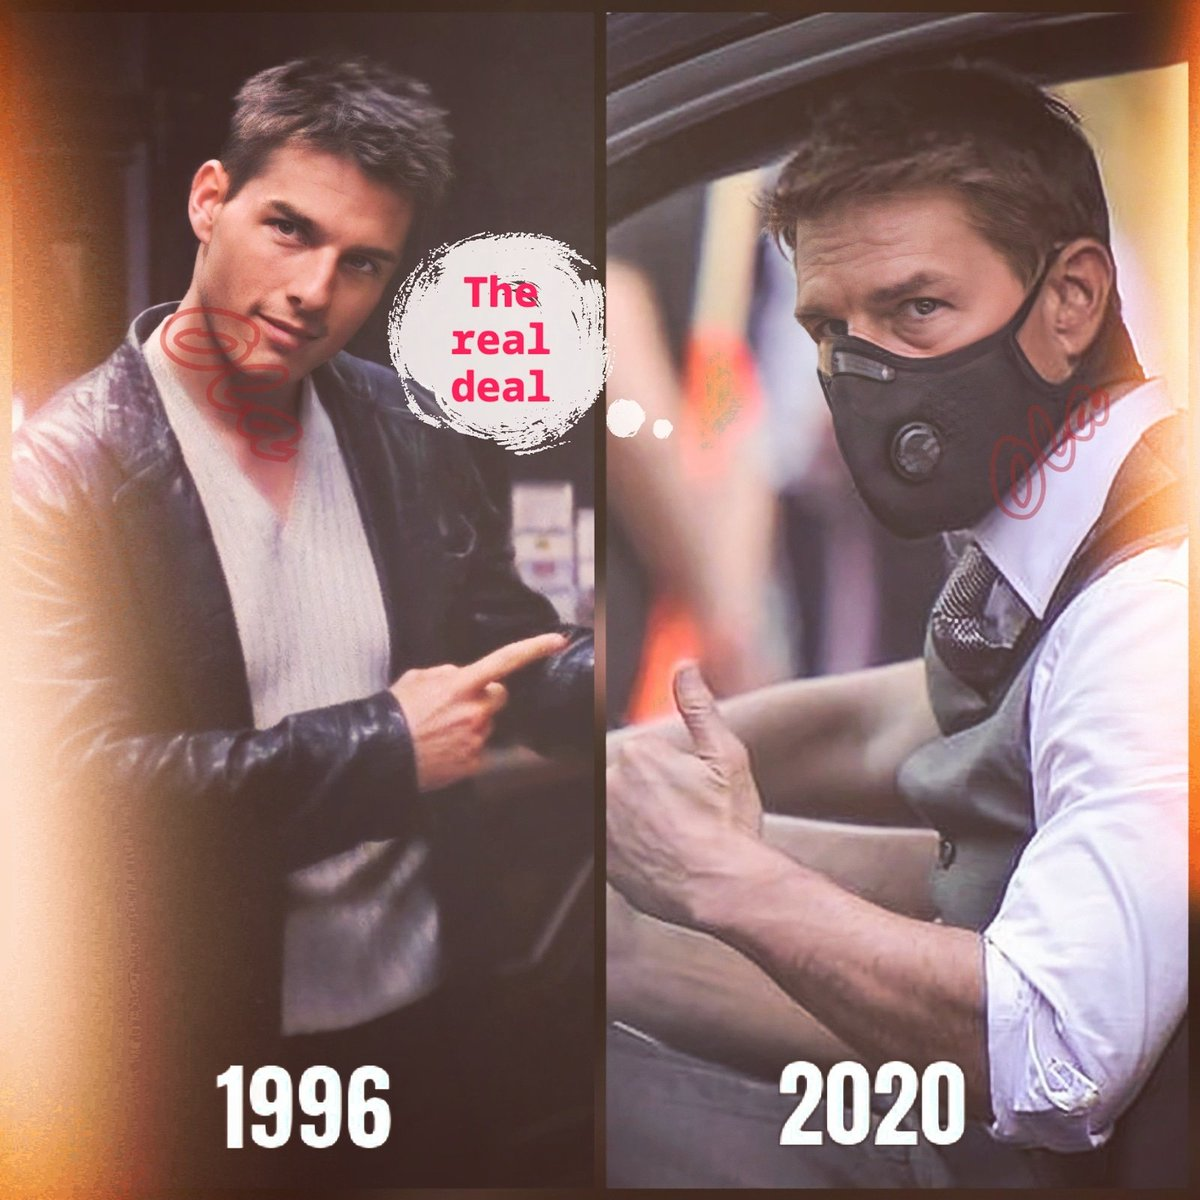 The man who makes possible the #missionimpossible 😍😍 #saturdaymotivation #tomcruise #cruisegasm best actor #thebest artist #cinematography cinema @TomCruise